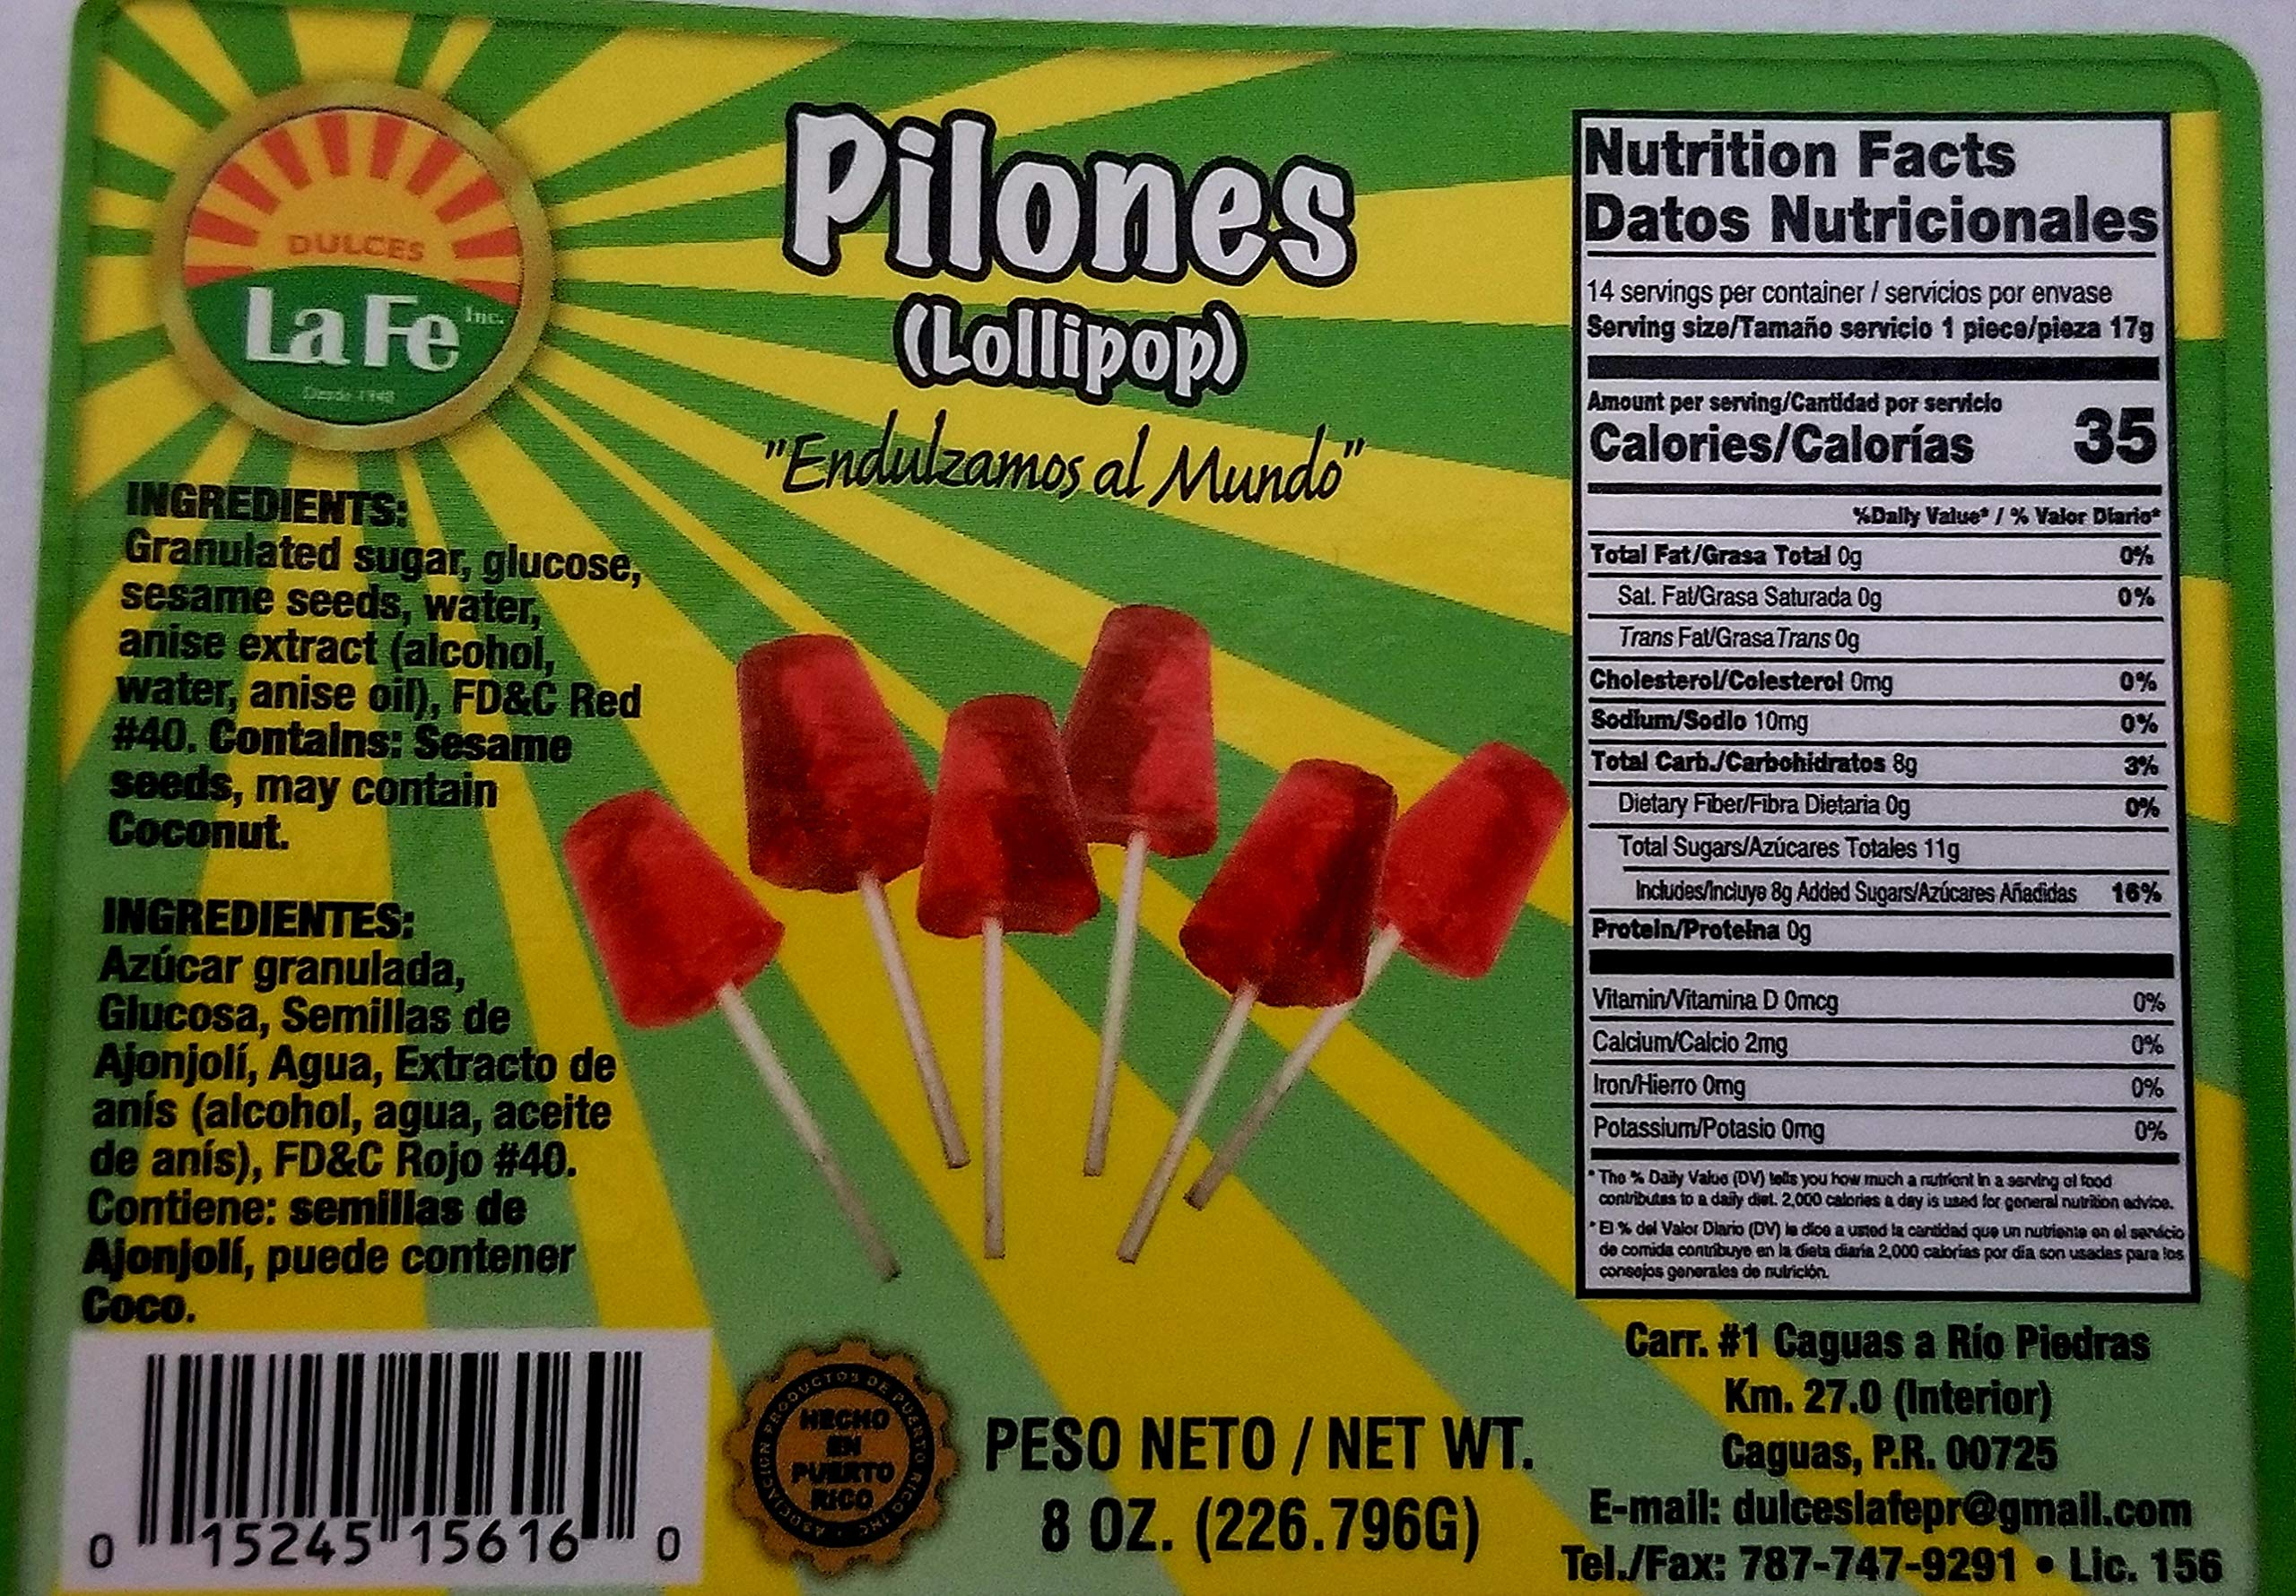 Amazon.com : Lolipops (Pilones) By Fabrica De Dulces La Fe (12-18 Pieces) 8 Oz Pack : Suckers And Lollipops : Grocery & Gourmet Food